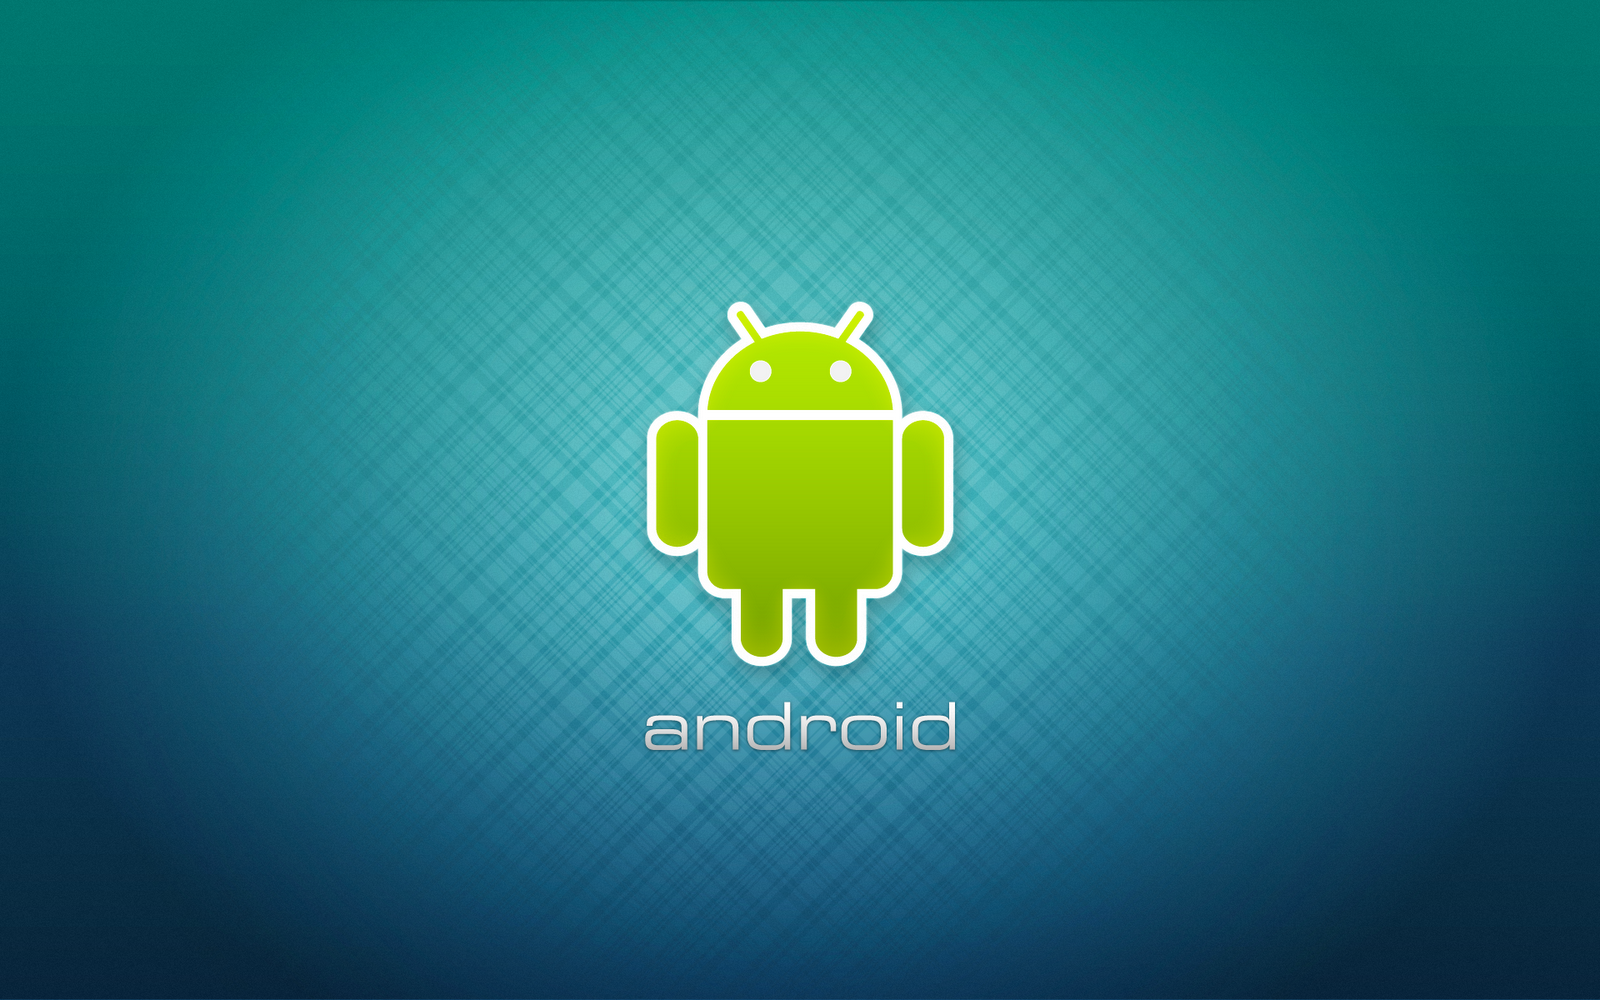 Android Tablet Wallpaper HD - WallpaperSafari